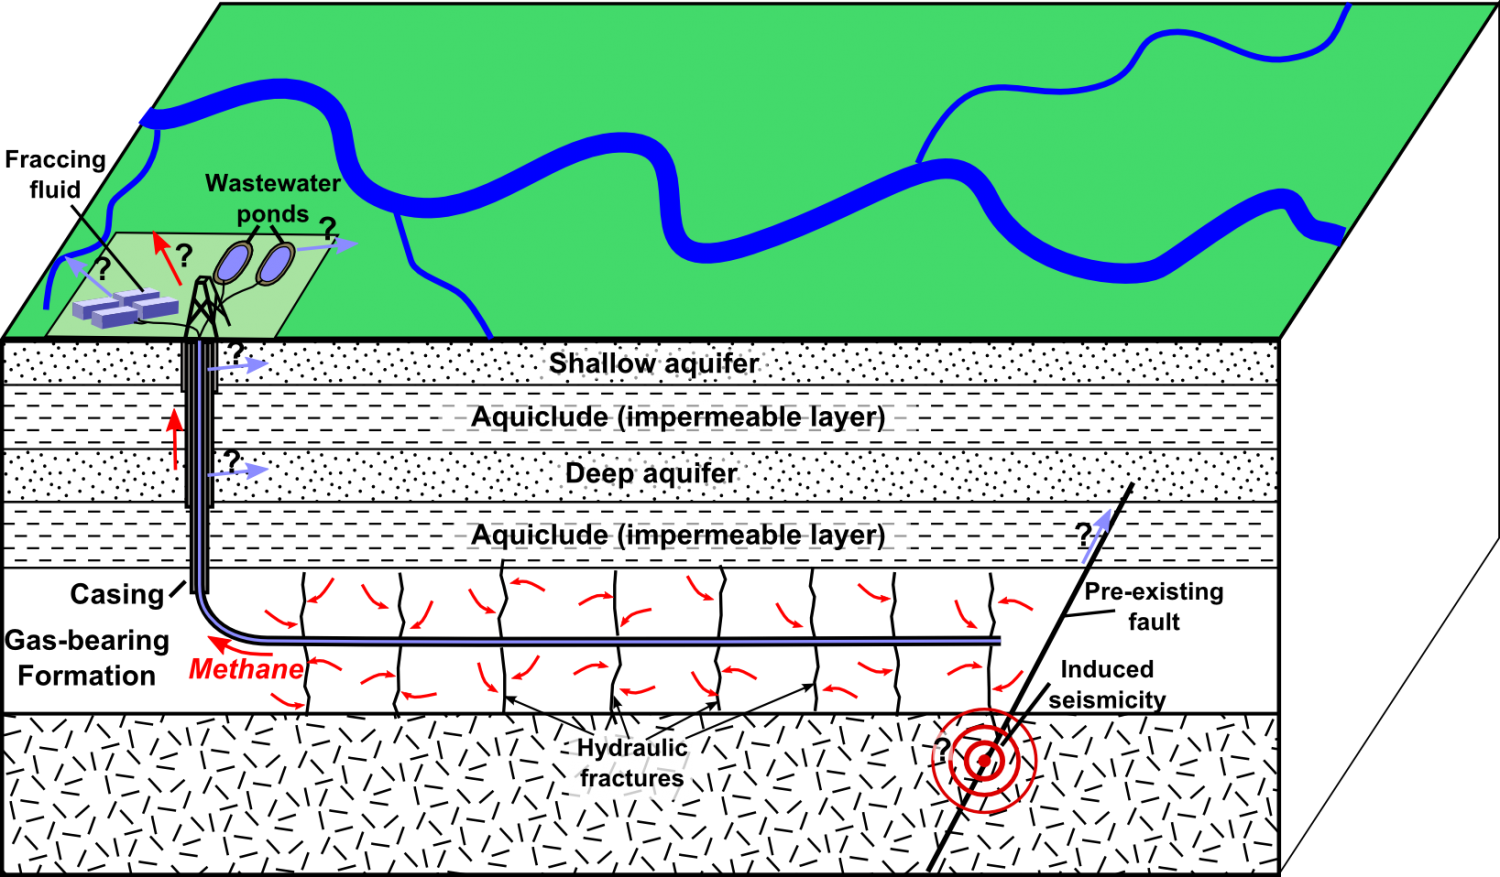 New study identifies organic compounds of potential concern in schematic depiction of hydraulic fracturing for shale gas showing main possible environmental effects credit mikenortonwikipedia nvjuhfo Images